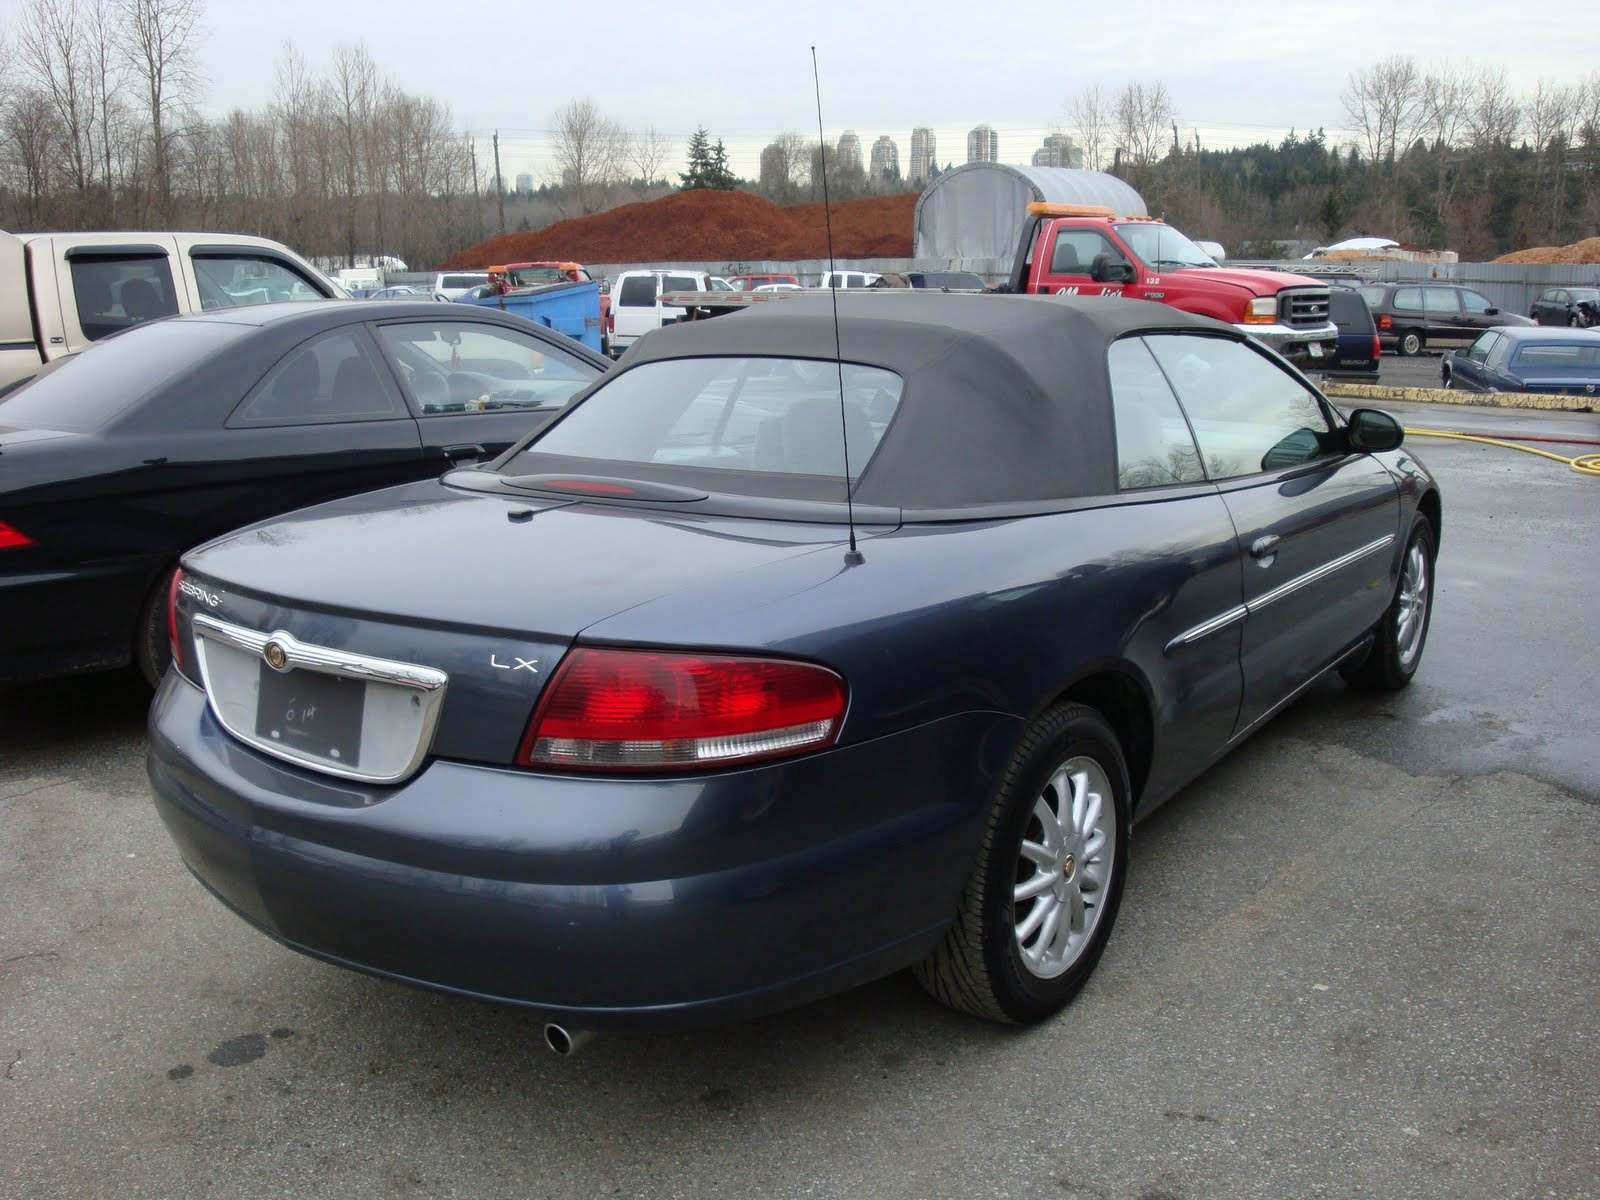 2002 Chrysler Sebring Information And Photos Momentcar 3 8 V6 Engine Diagram 10